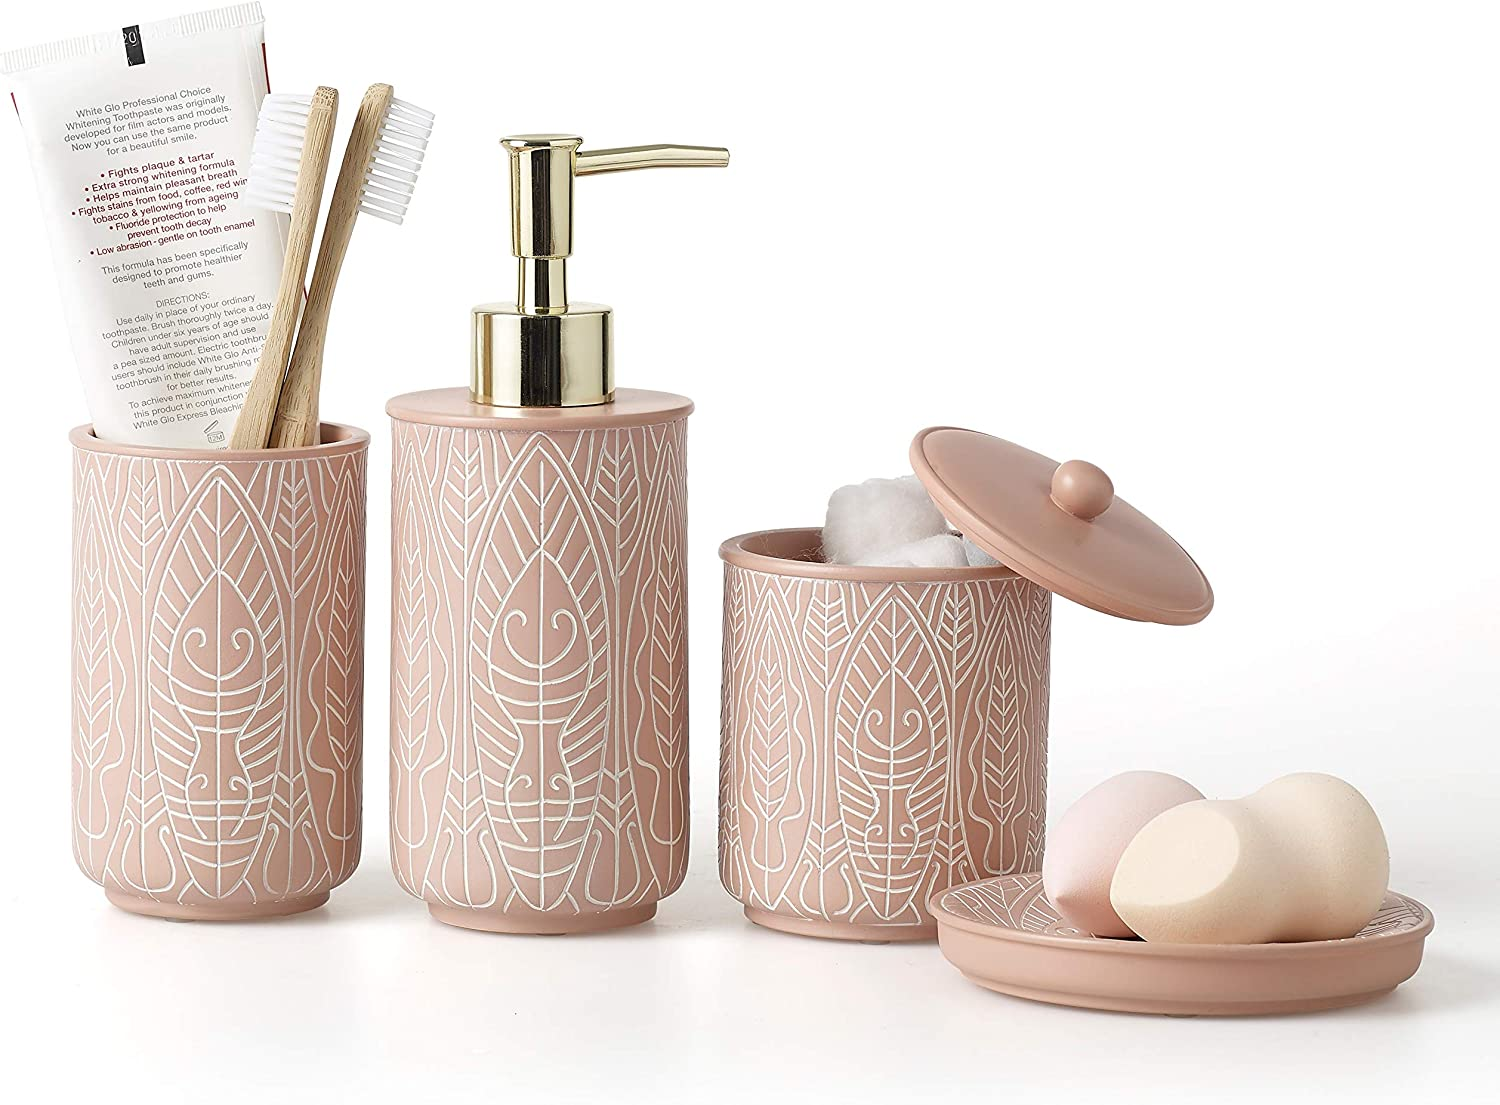 VIRTUNE Premium Pastel Pink Bathroom Accessory Set. Home and Apartment Essentials Including Hand Pump Soap Dispenser, Soap Dish, Toothbrush Holder, and Tumbler Cup. Modern Bathroom Decor